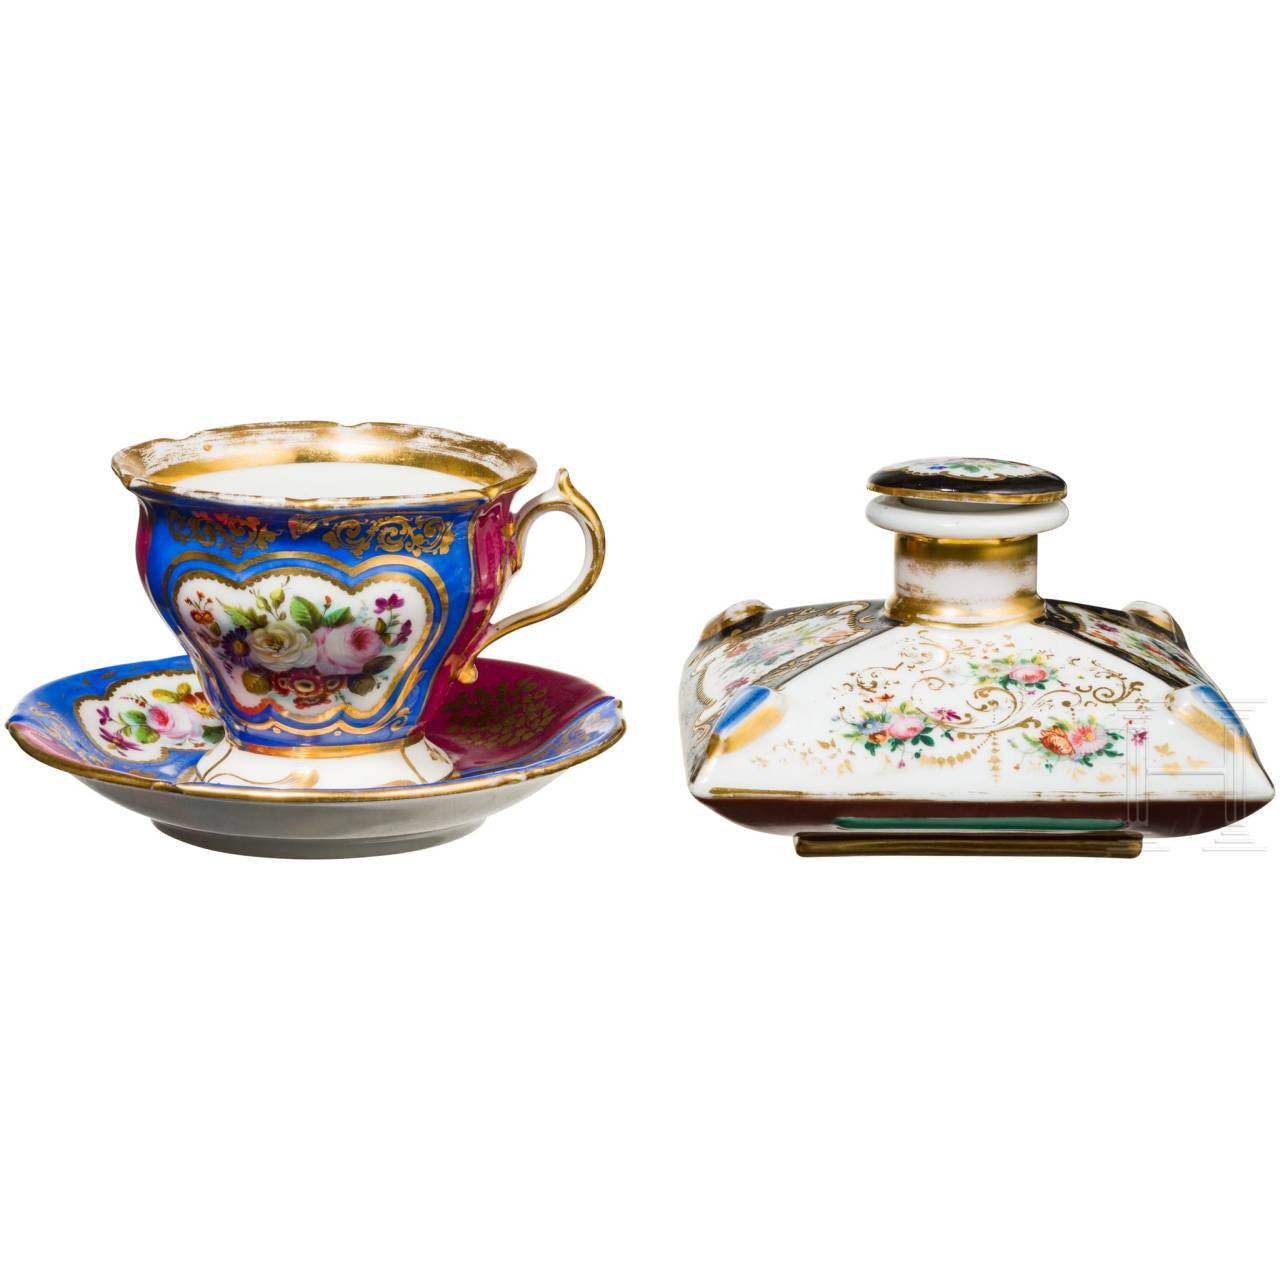 An inkwell or perfume bottle owned by Grand Duchess Olga Nikolaevna Romanova and a tea cup, probably Russian private manufactory, mid-19th century